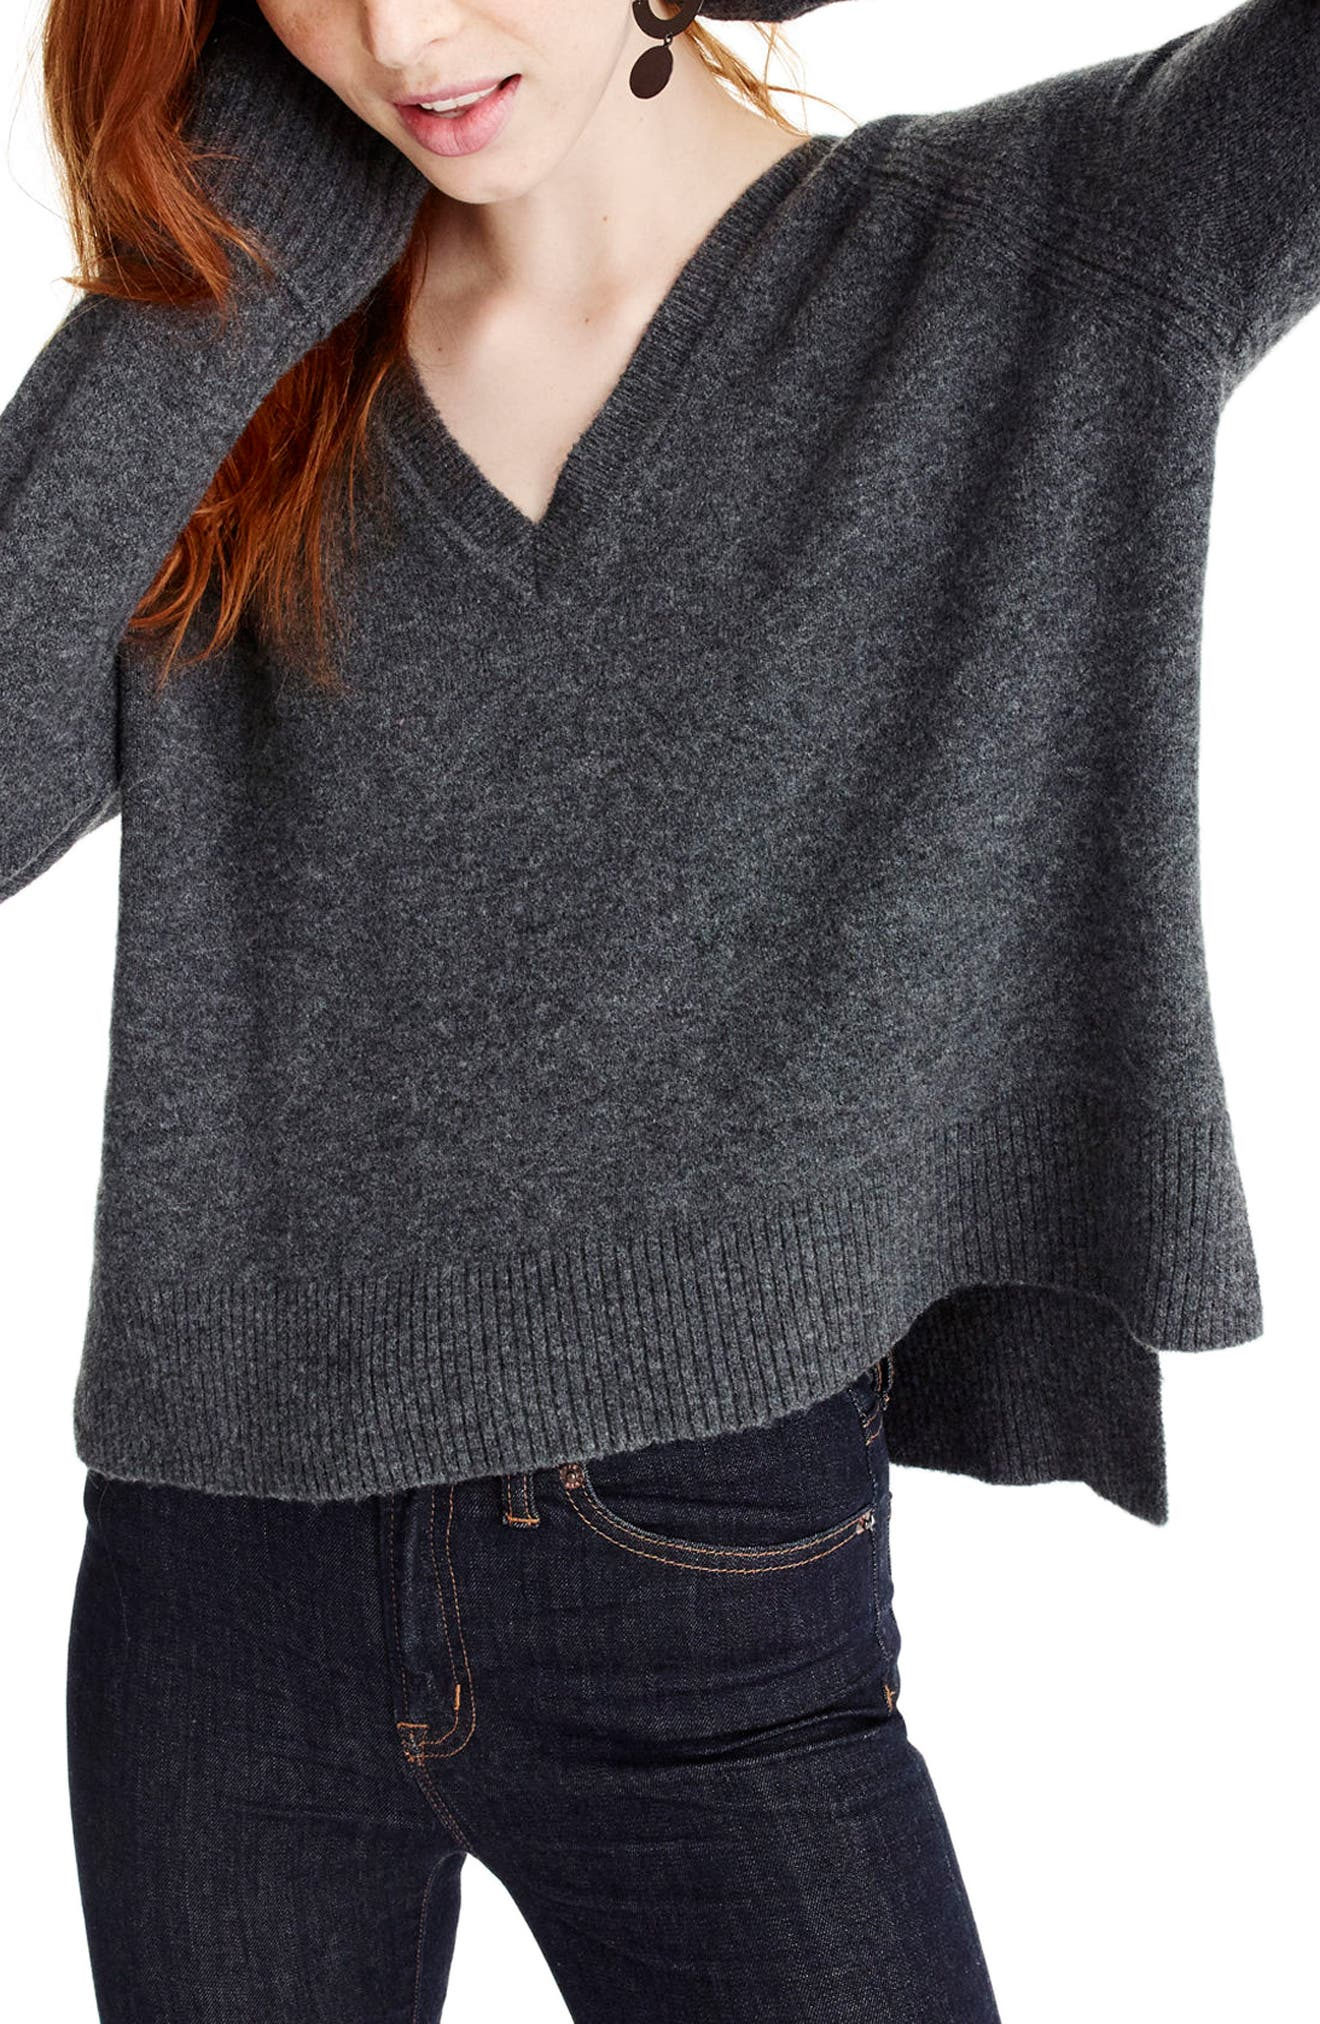 J.Crew Supersoft Yarn V-Neck Sweater,                             Main thumbnail 1, color,                             Heather Carbon